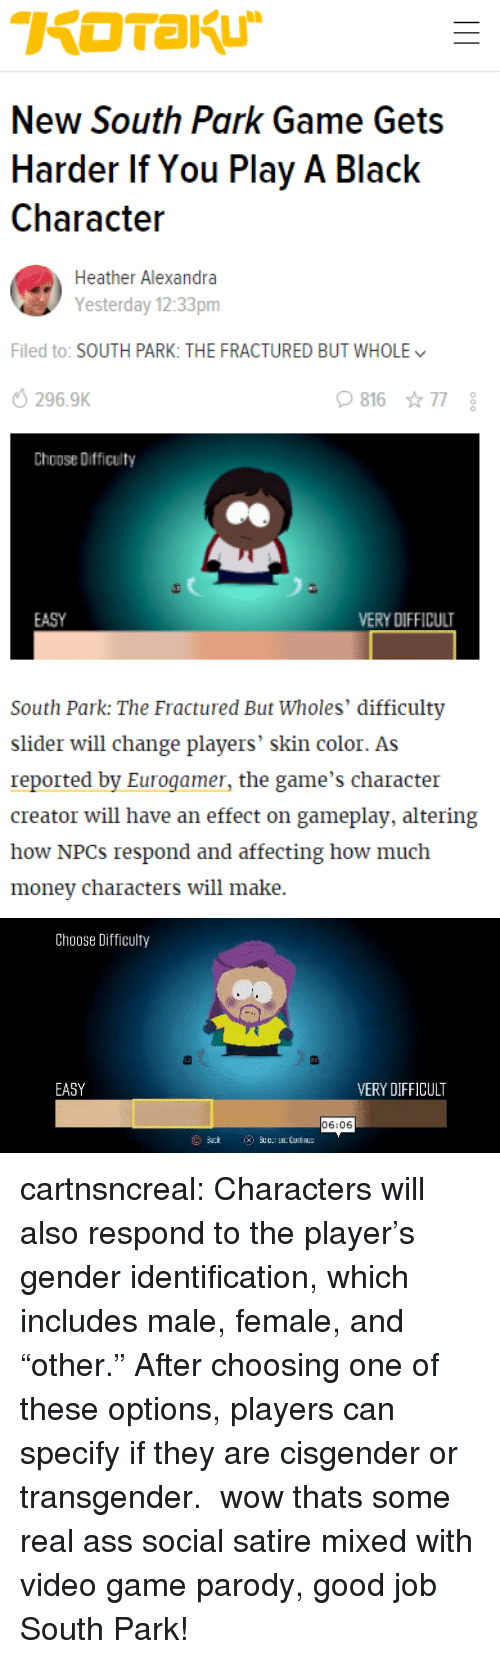 """Ass, Money, and South Park: New South Park Game Gets  Harder If You Play A Black  Characteir  Heather Alexandra  Yesterday 12:33pm  Filed to: SOUTH PARK: THE FRACTURED BUT WHOLE  296.9K  81677  Choose Difficulty  EASY  ERY DIFFICULT  South Park: The Fractured But Wholes' difficulty  slider will change players' skin color. As  reported by Eurogamer, the game's character  creator will have an effect on gameplay, altering  how NPCs respond and affecting how much  money characters will make.   Choose Difficulty  EASY  VERY DIFFICULT  06:06 cartnsncreal:    Characters will also respond to the player's gender identification, which includes male, female, and """"other."""" After choosing one of these options, players can specify if they are cisgender or transgender.  wow thats some real ass   social  satire mixed with video game parody, good job South Park!"""